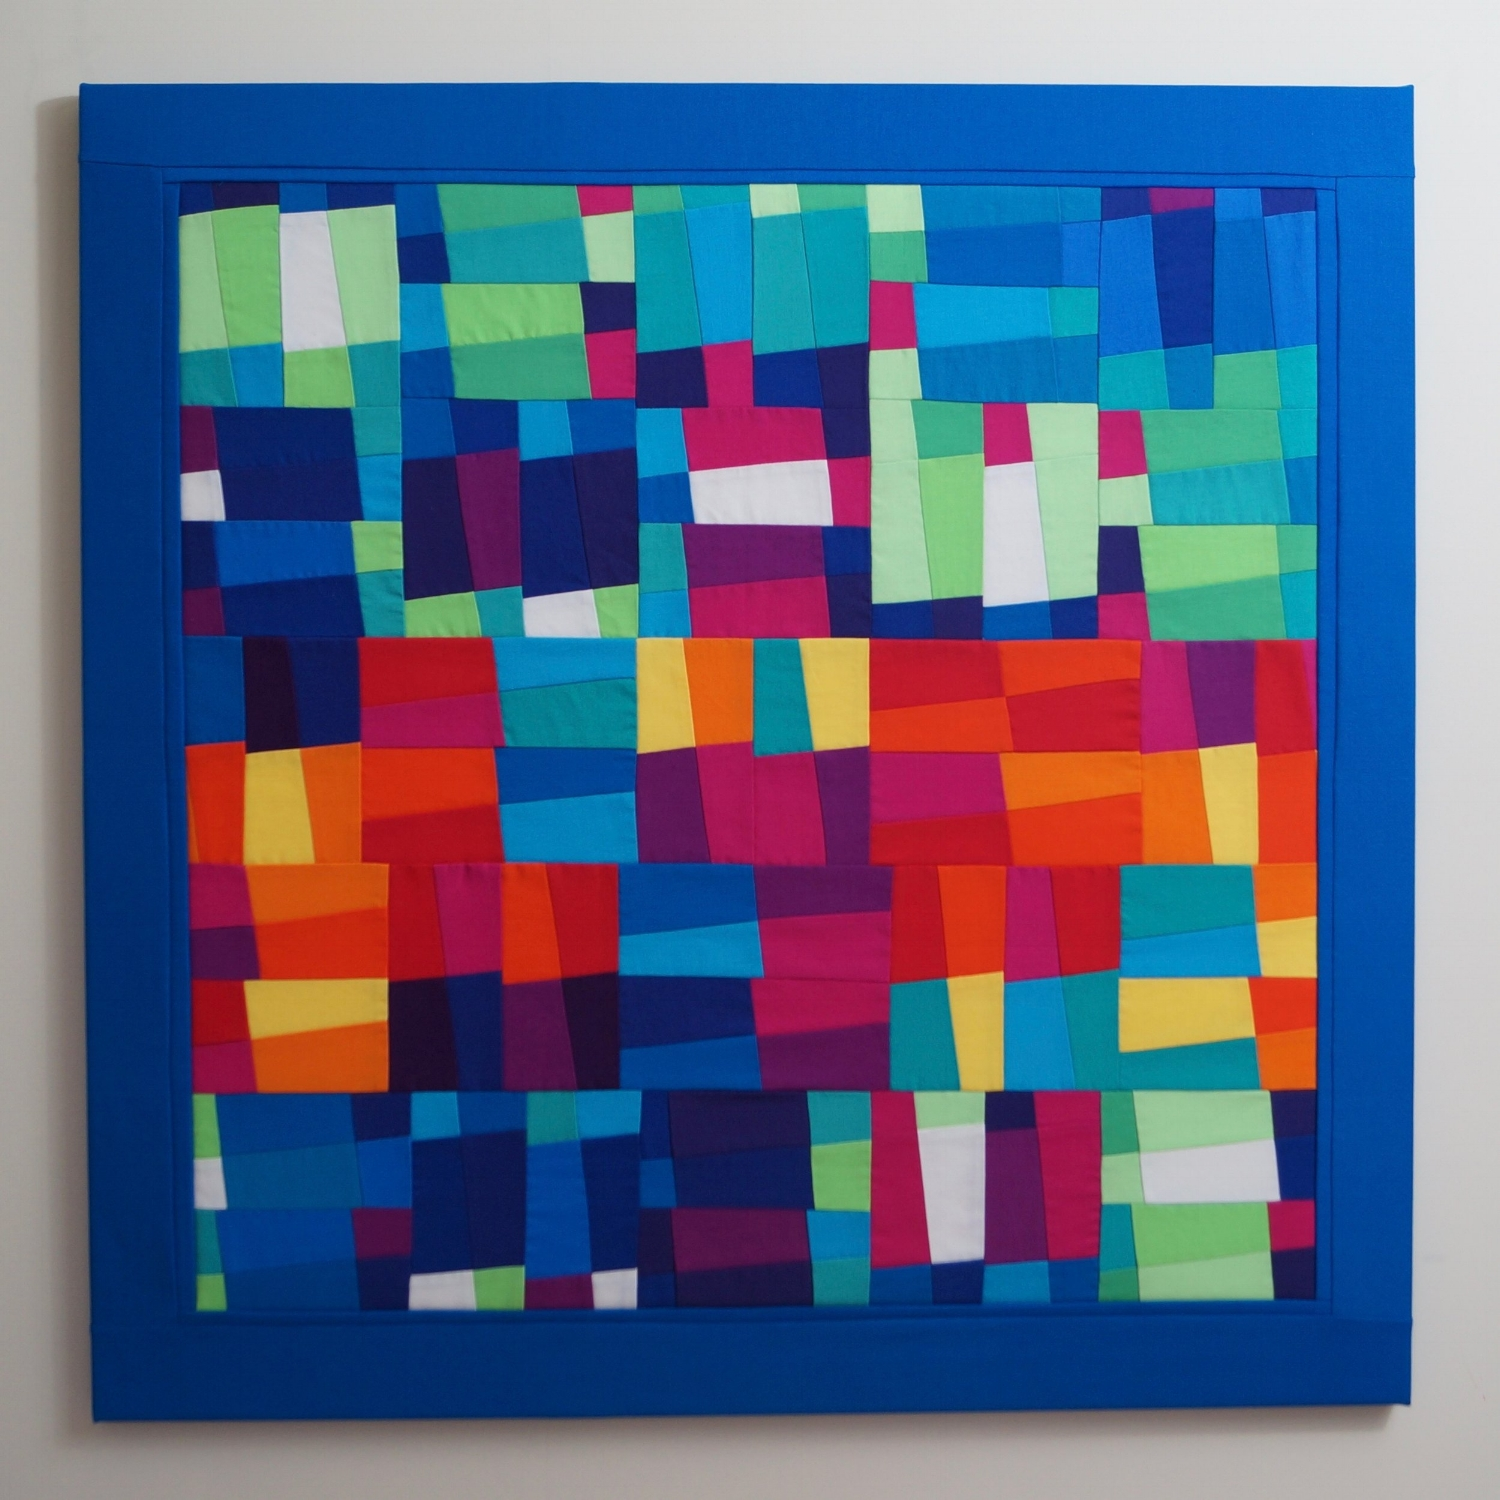 Sequence: 2 - 75cm square2016* 100% cotton fabric* 100% cotton batting* calico backing* tie quilted* stretched on a canvas stretcher* split batten wall fastening* signed and dated on reverse£1463